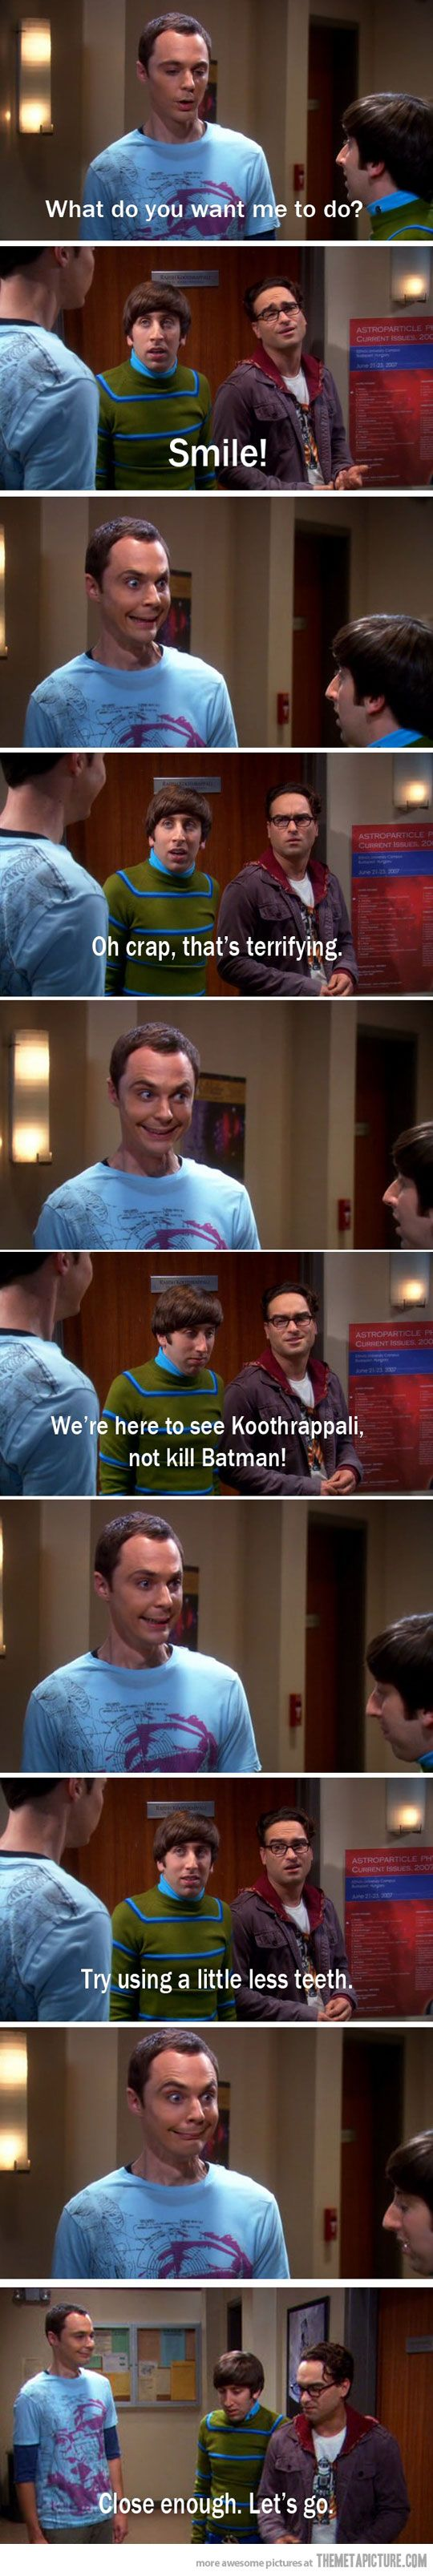 One of the best scenes in TBBT. I love Sheldon, his OCD-ness and all his little quirks!